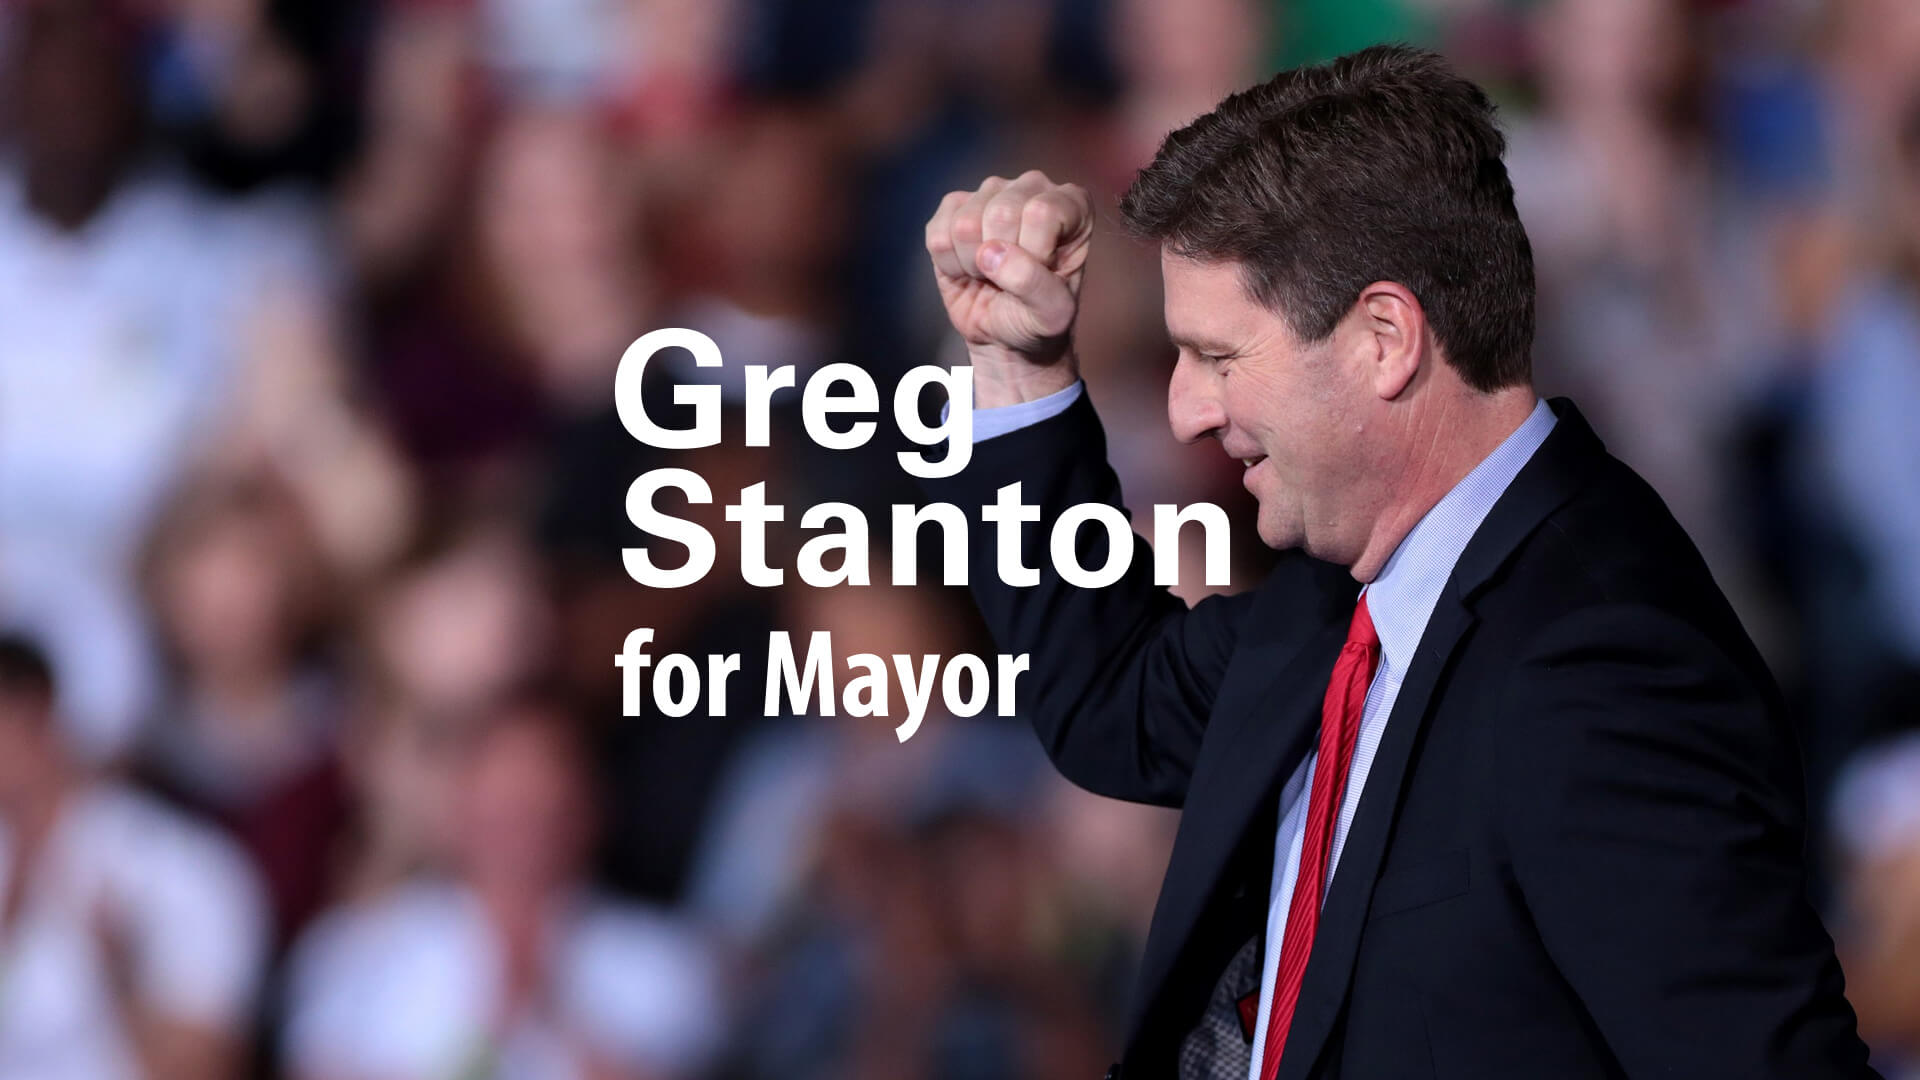 Greg Stanton for Mayor